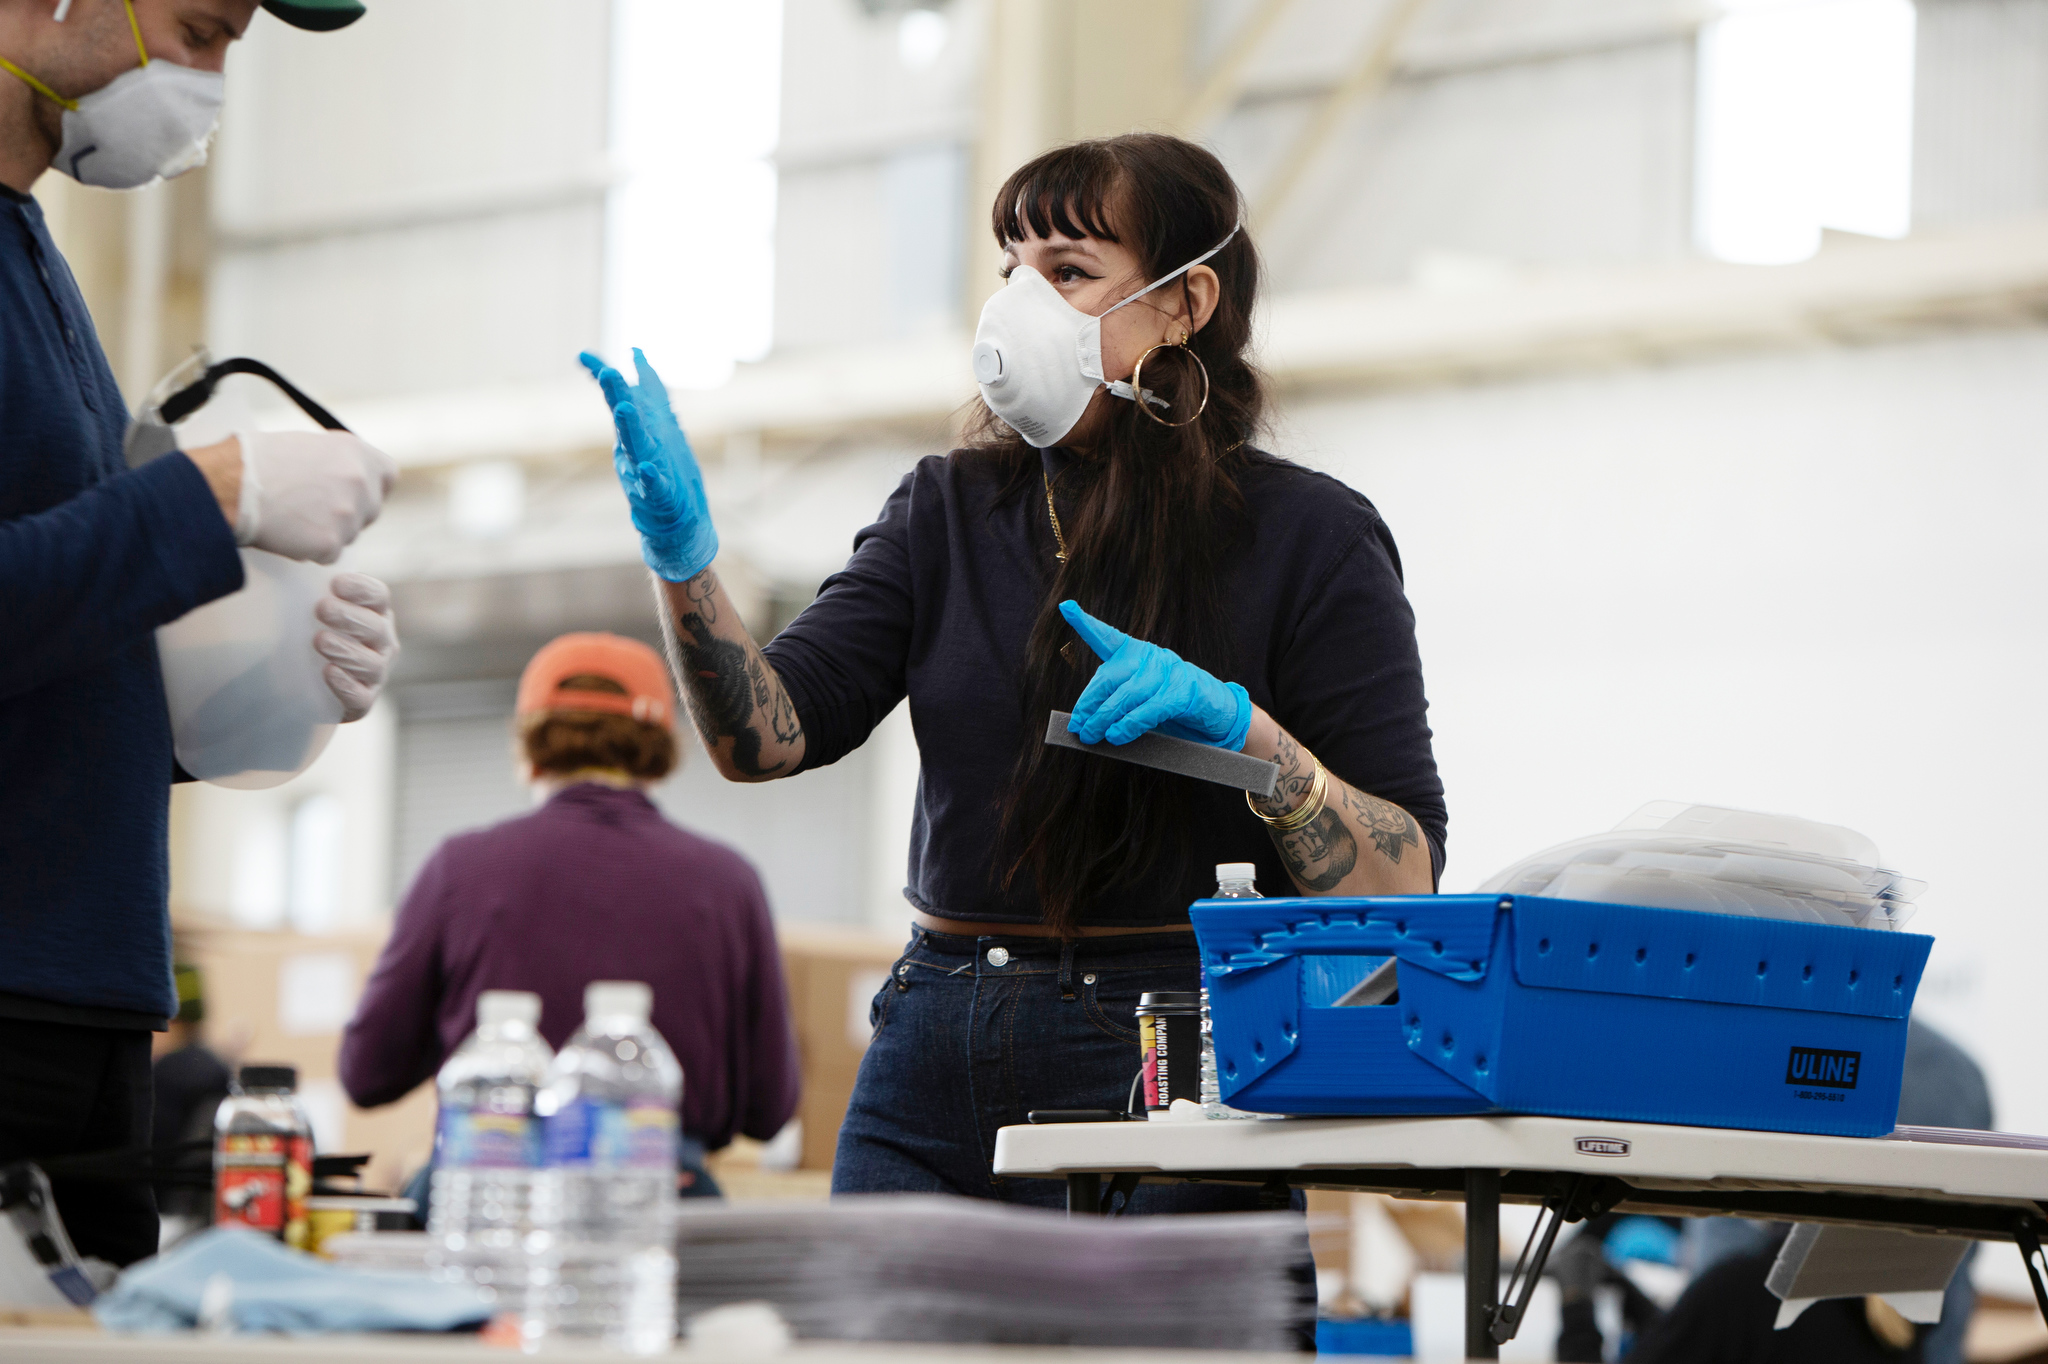 Workers from Bednark Studio and Duggal Visual Solutions are part of a group effort making face shields in The Brooklyn Navy Yard.